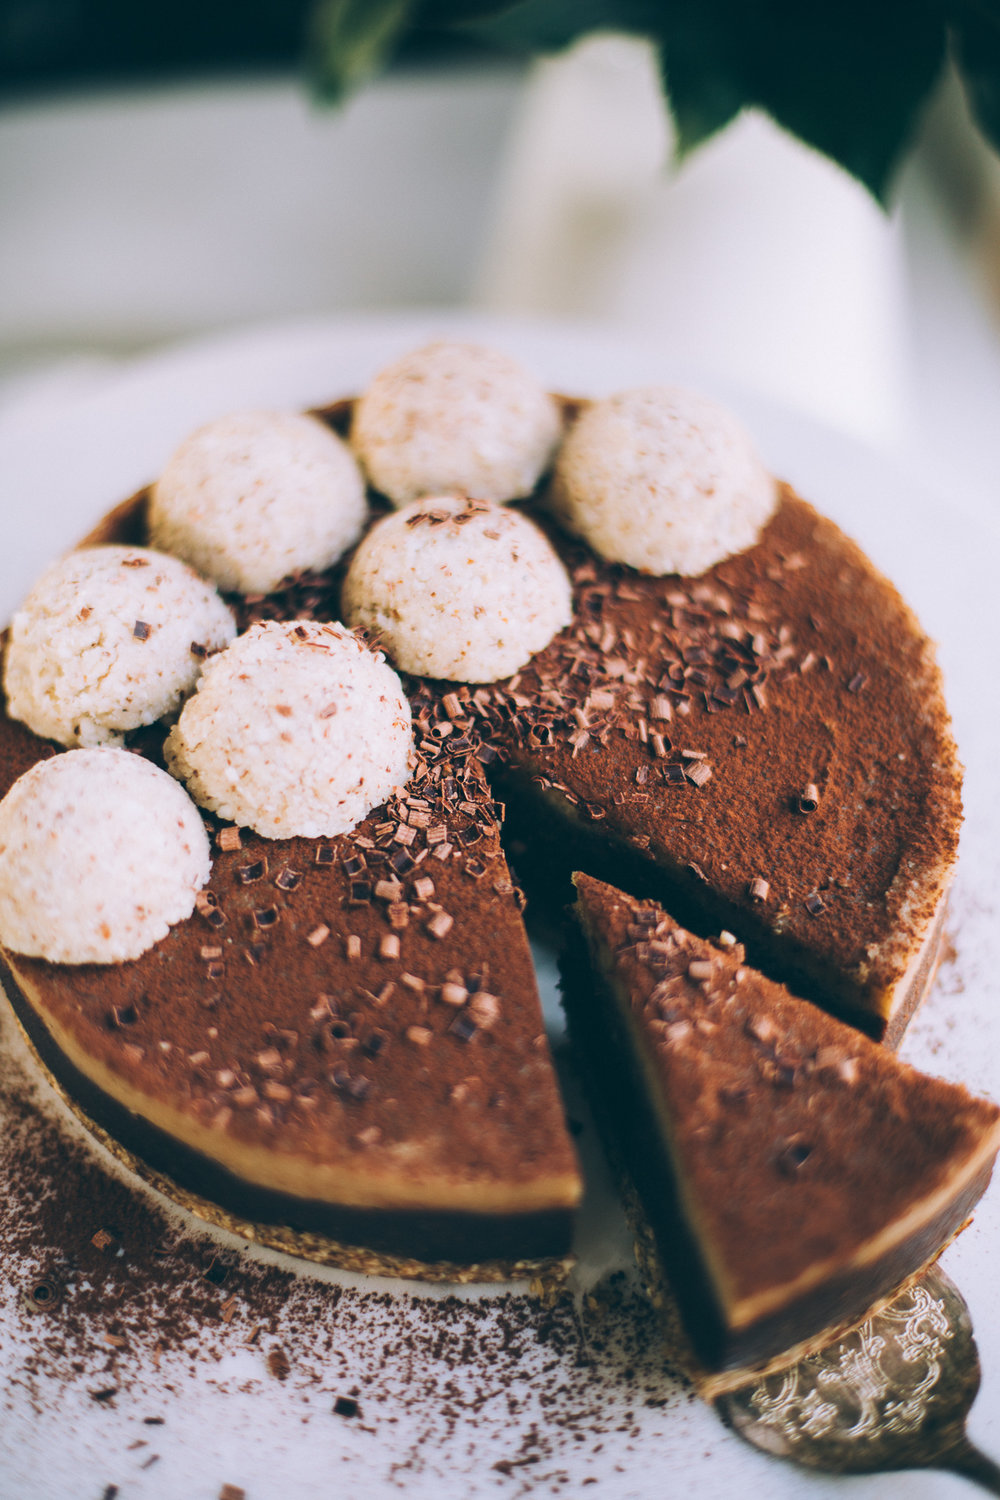 raw-vegan-chocolate-cashew-caramel-cake-7177.jpg